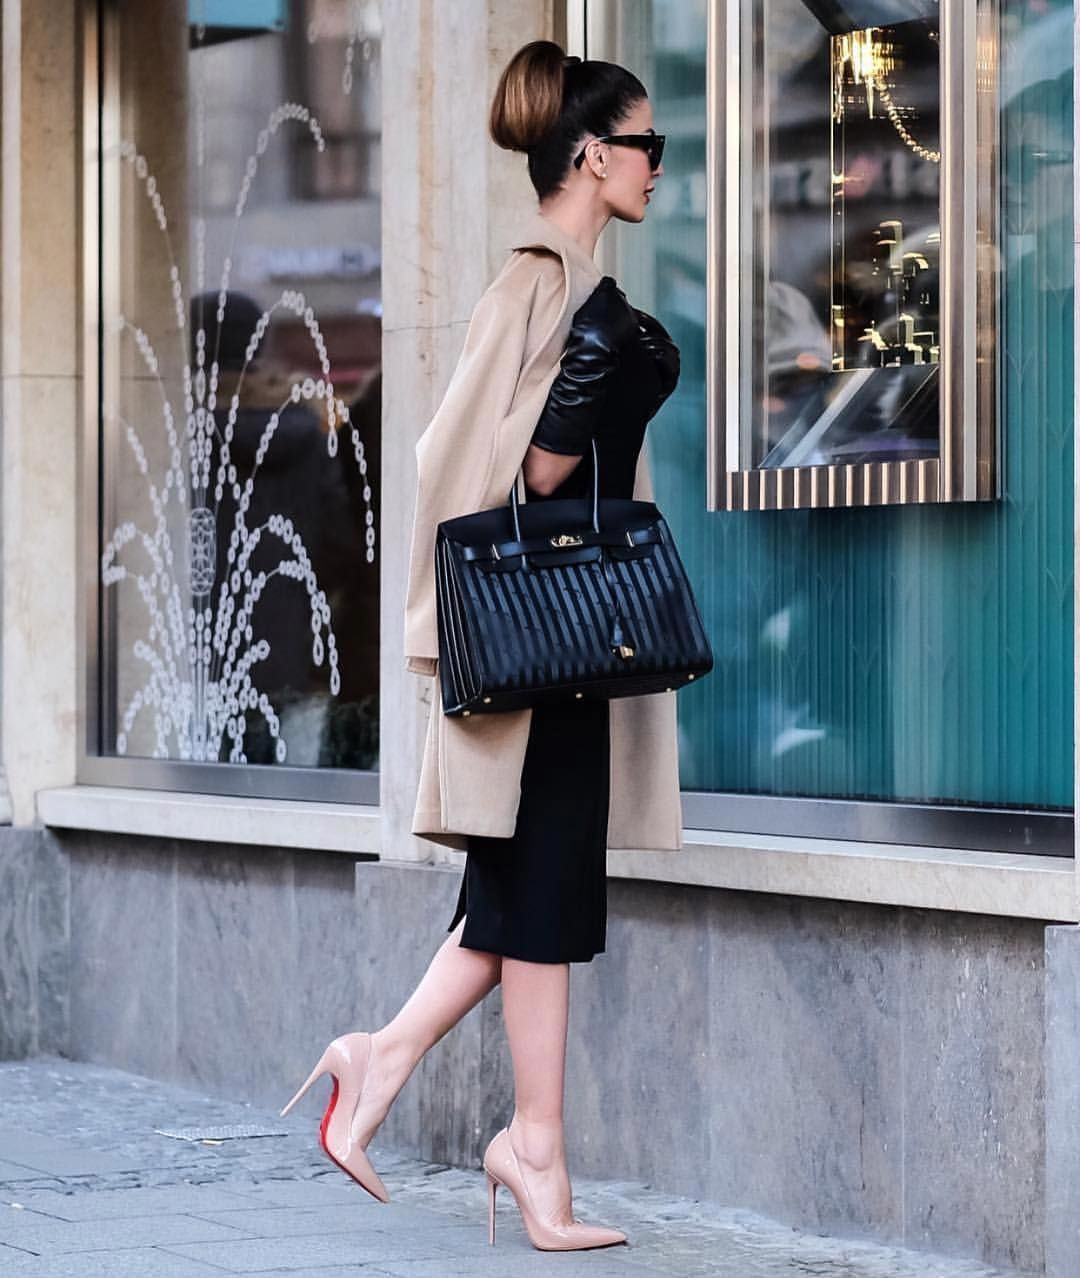 White apron brea ca - Team Louboutin On Instagram Breakfast At Tiffany In Louboutins Start The Year Right